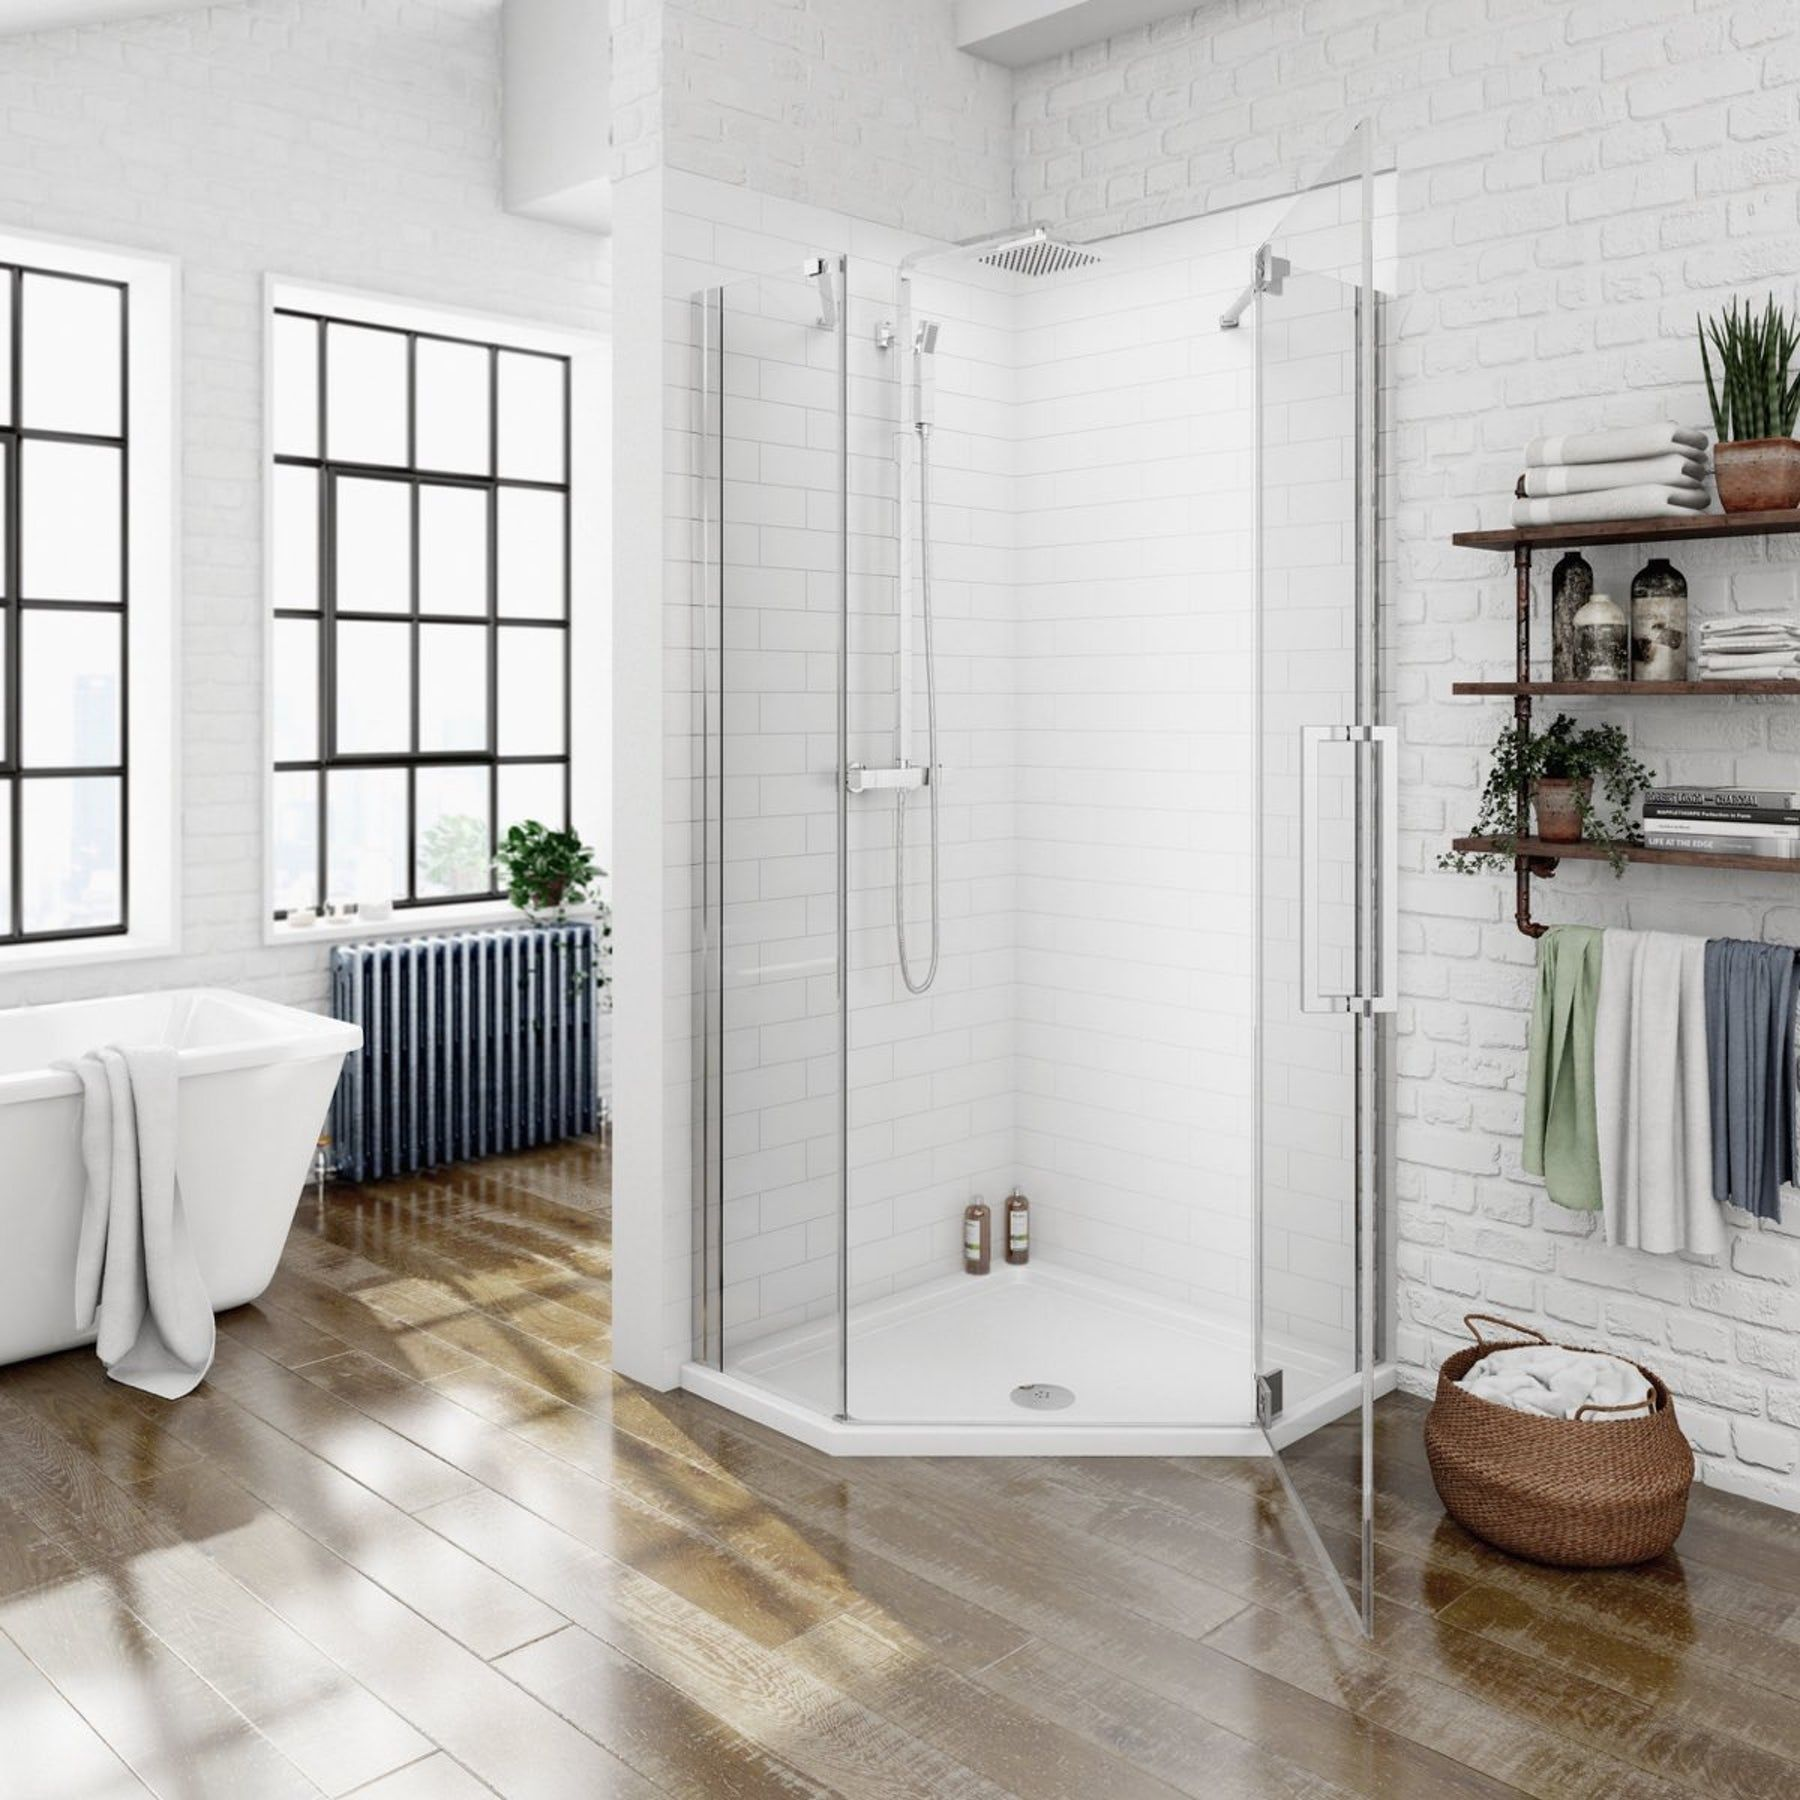 Maravilloso Imagenes Modelos De Puerta Para Cuartos Consejos Consejos In 2020 Frameless Shower Enclosures Walk In Shower Enclosures Quadrant Shower Enclosures